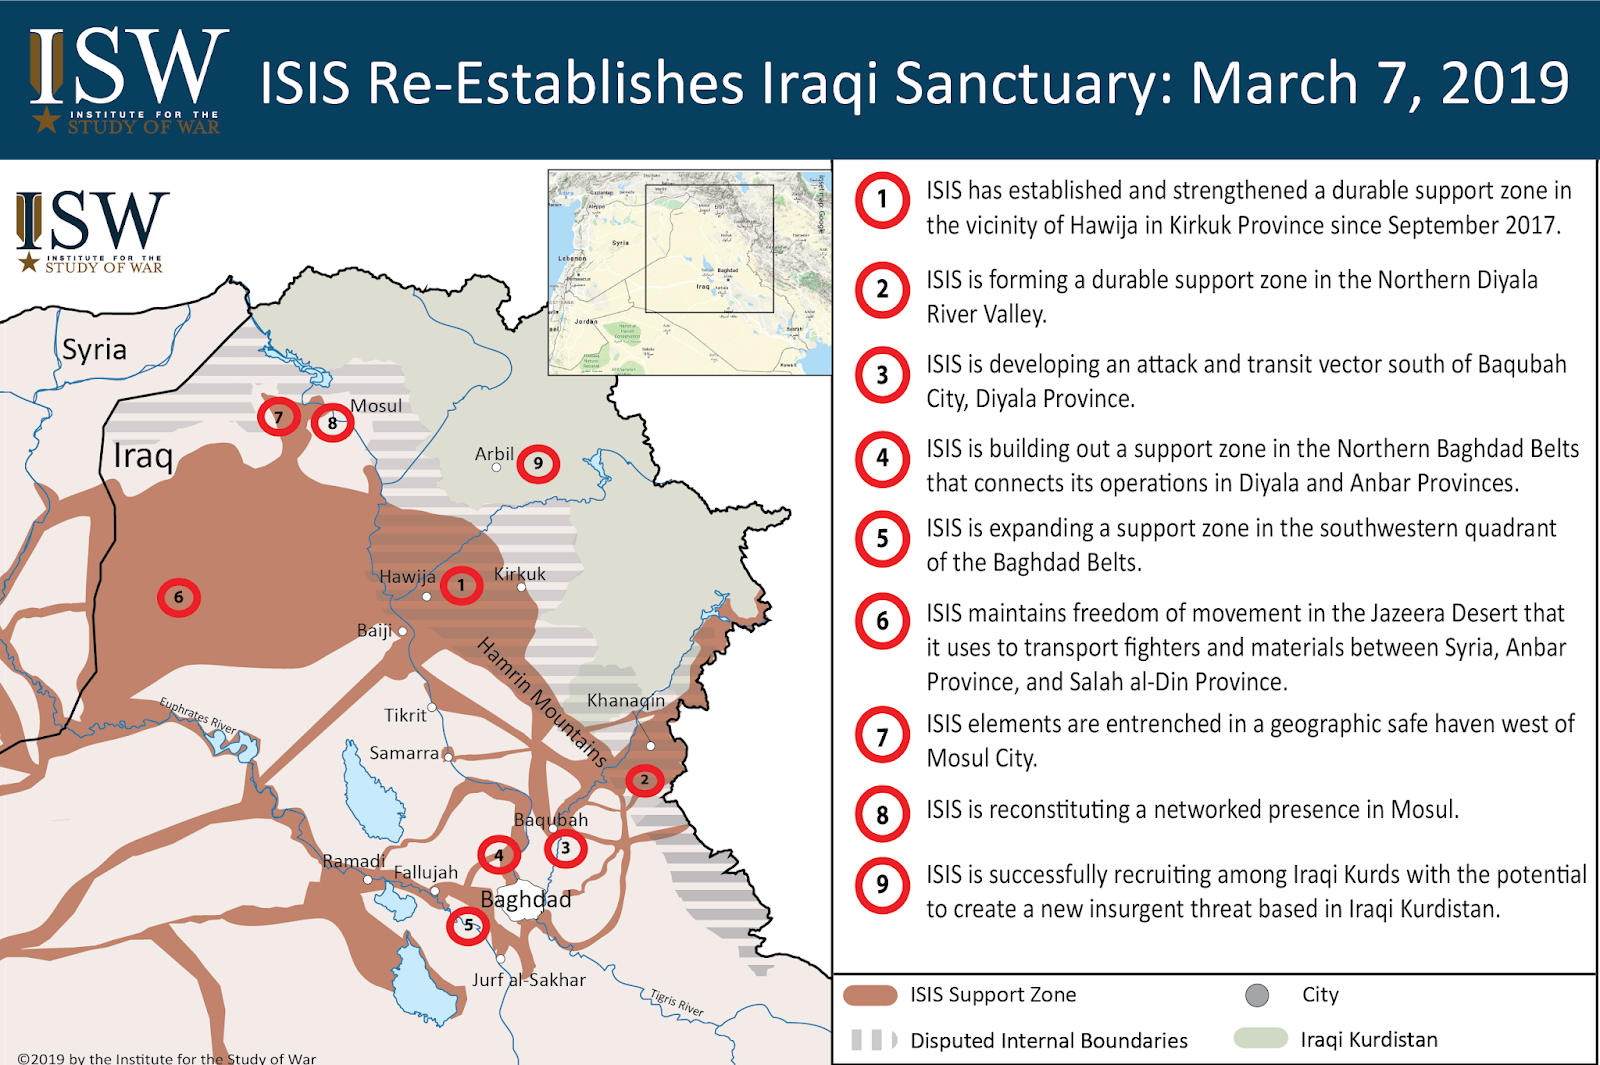 ISW Blog: ISIS Re-Establishes Historical Sanctuary in Iraq